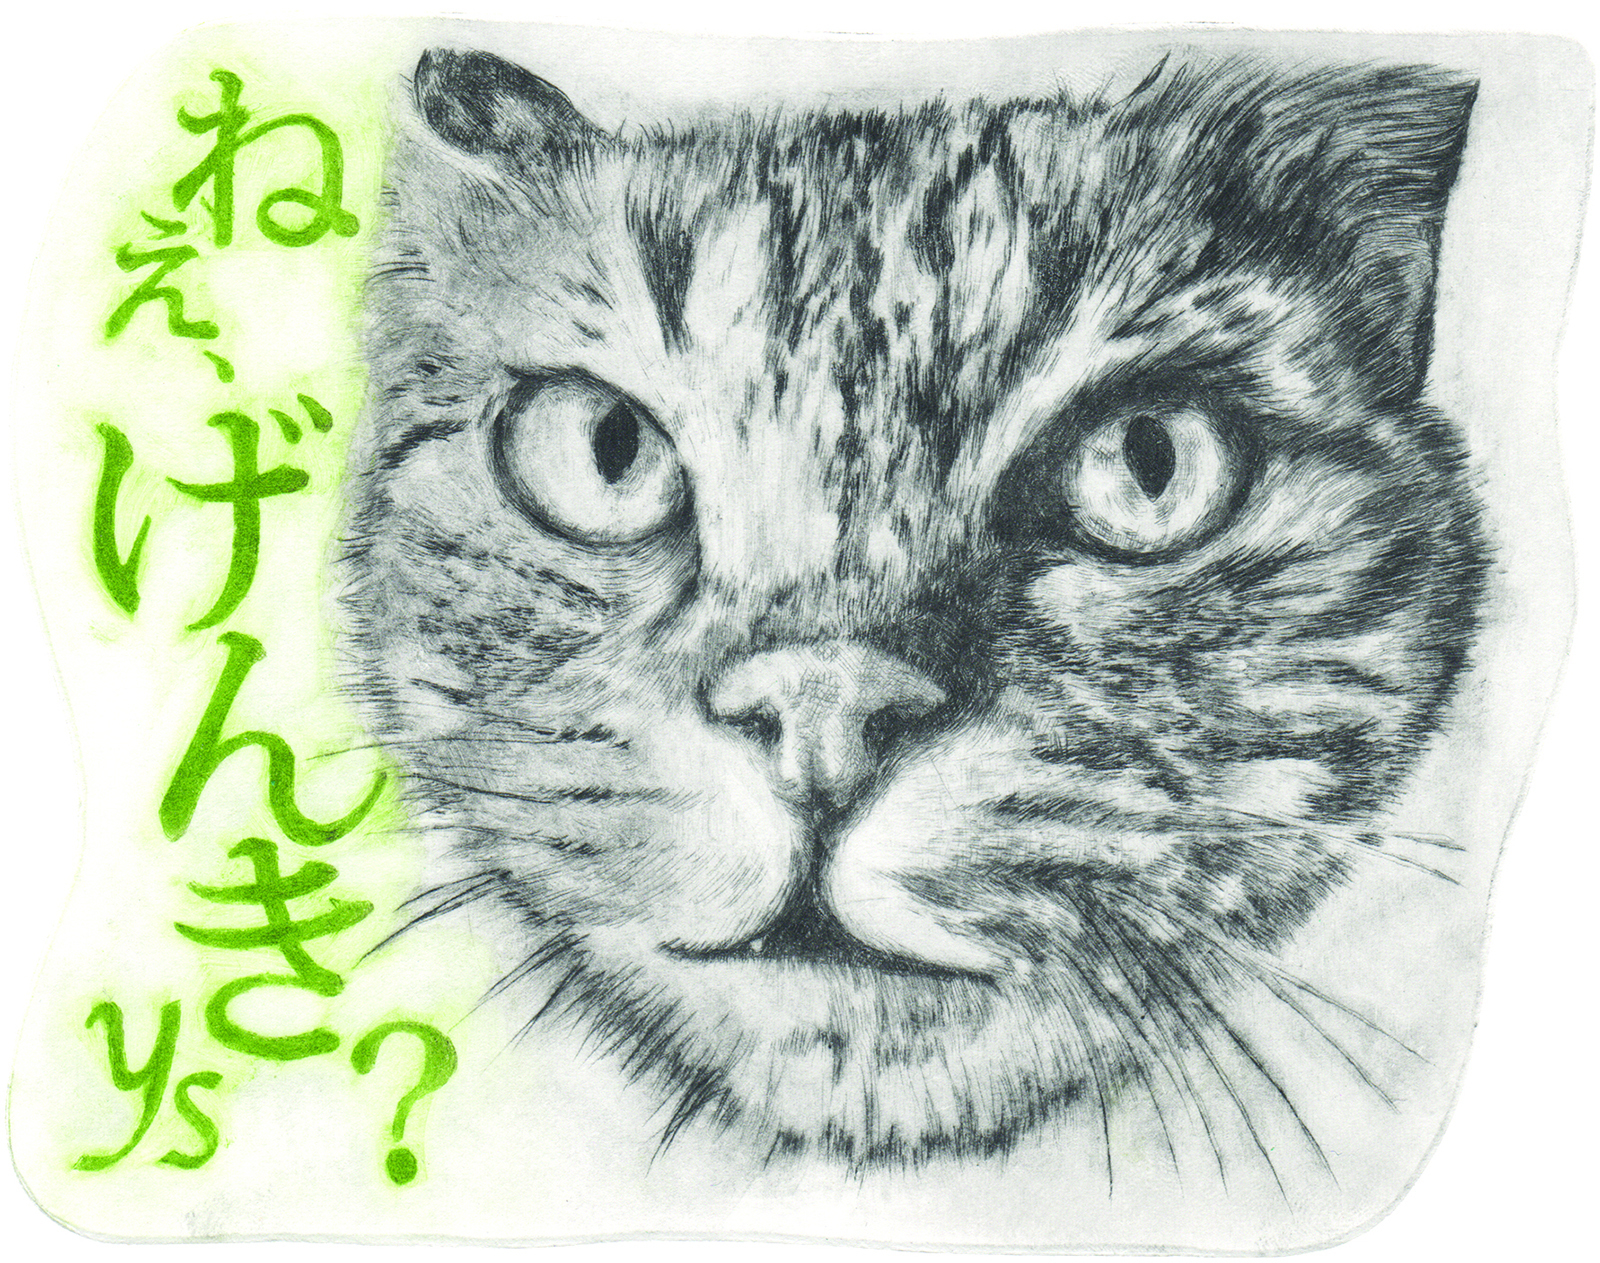 Greetings! Are you OK? (drypoint etching by Yaemi Shigyo)